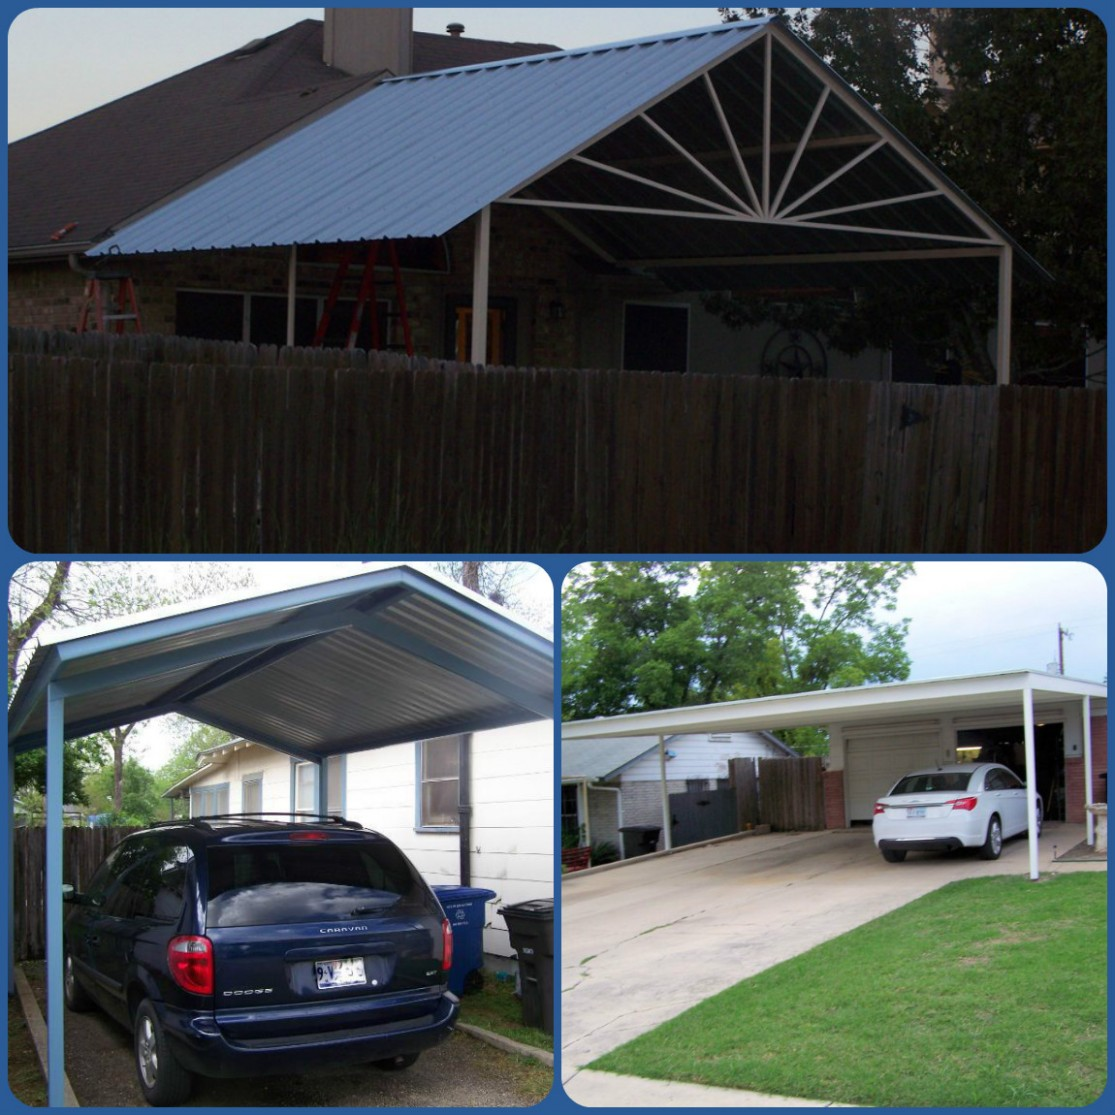 The Ultimate Revelation Of Carport Awnings Prices | carport awnings prices